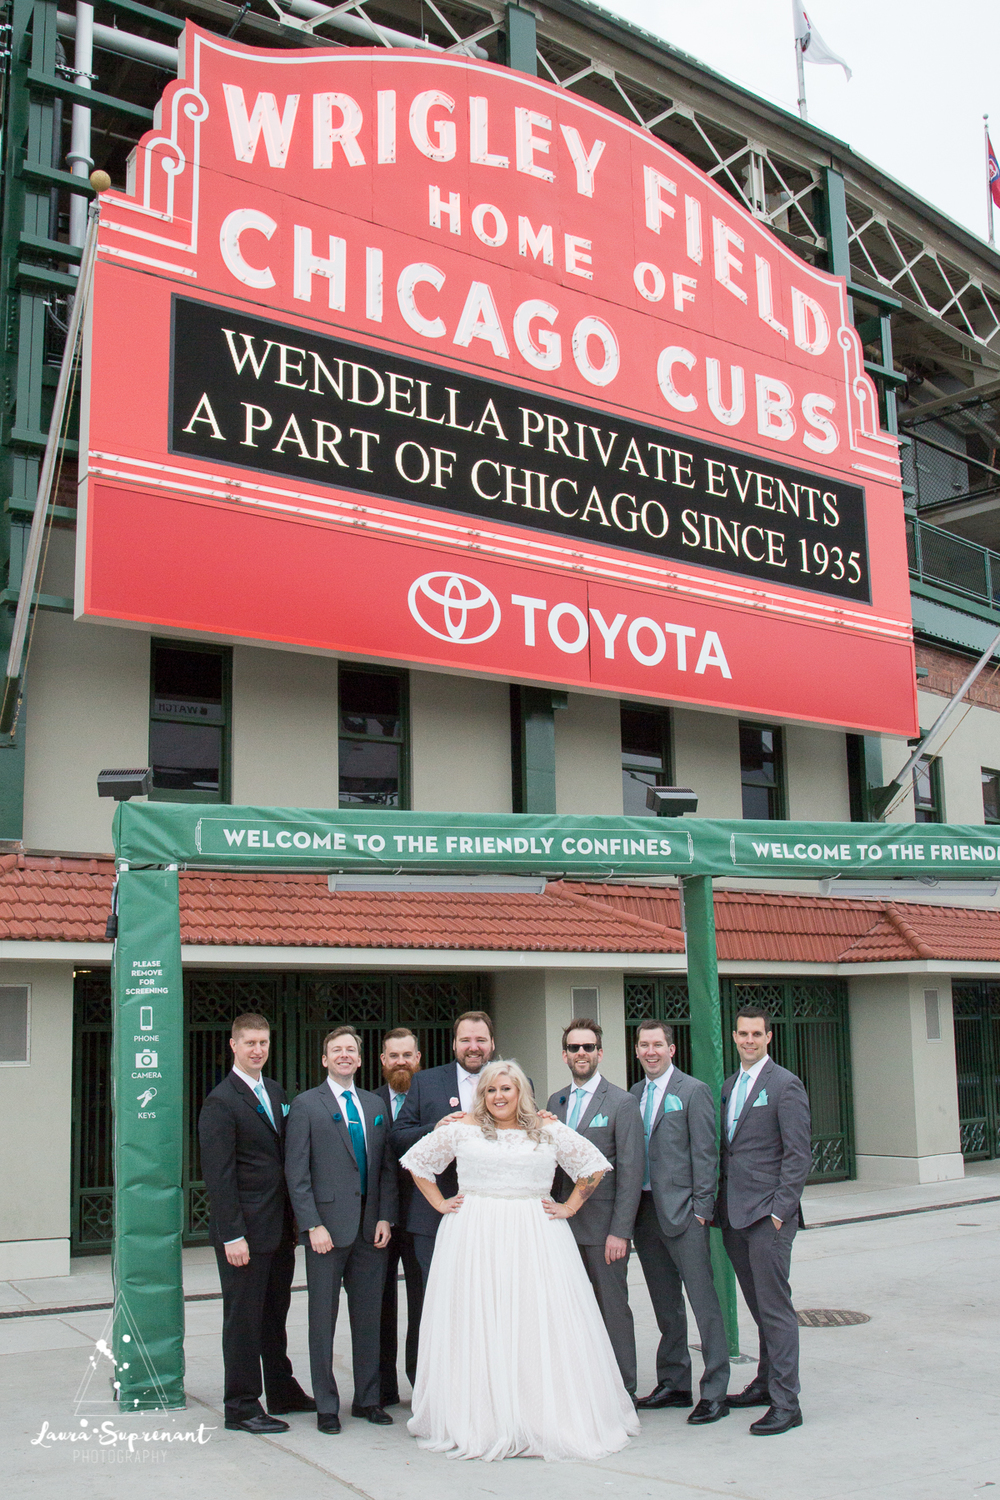 wedding_photography_chicago_wrigley_field_ravenswood_event_center_laura_suprenant (42 of 82).jpg